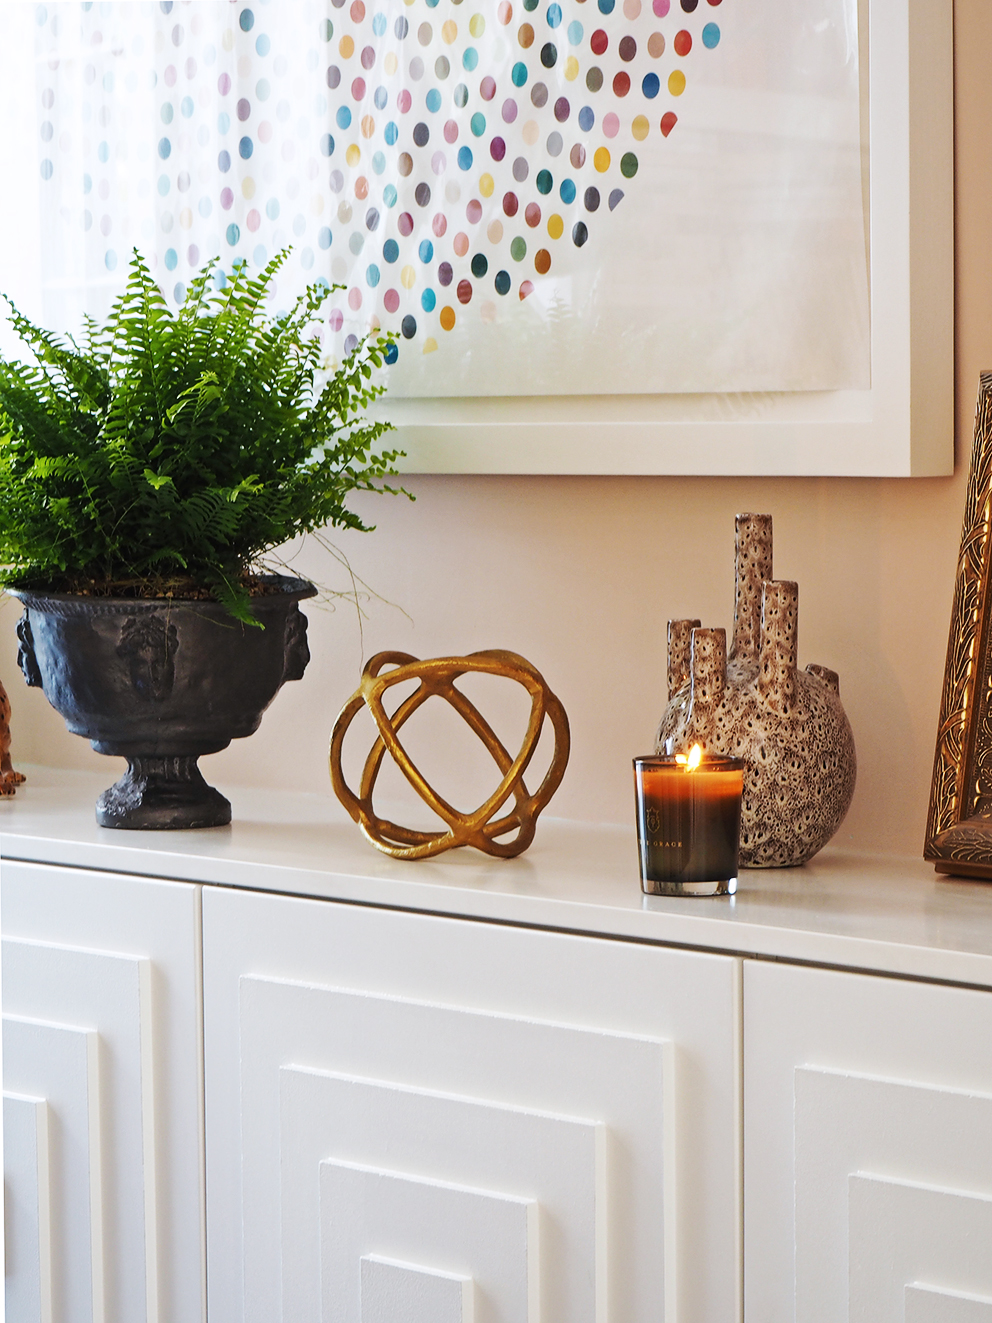 My Summer Dining Room - French For Pineapple Blog - damien hirst valium print above sideboard with stepped panelled doors with boston fern in an urn planter and gold orb decorative object